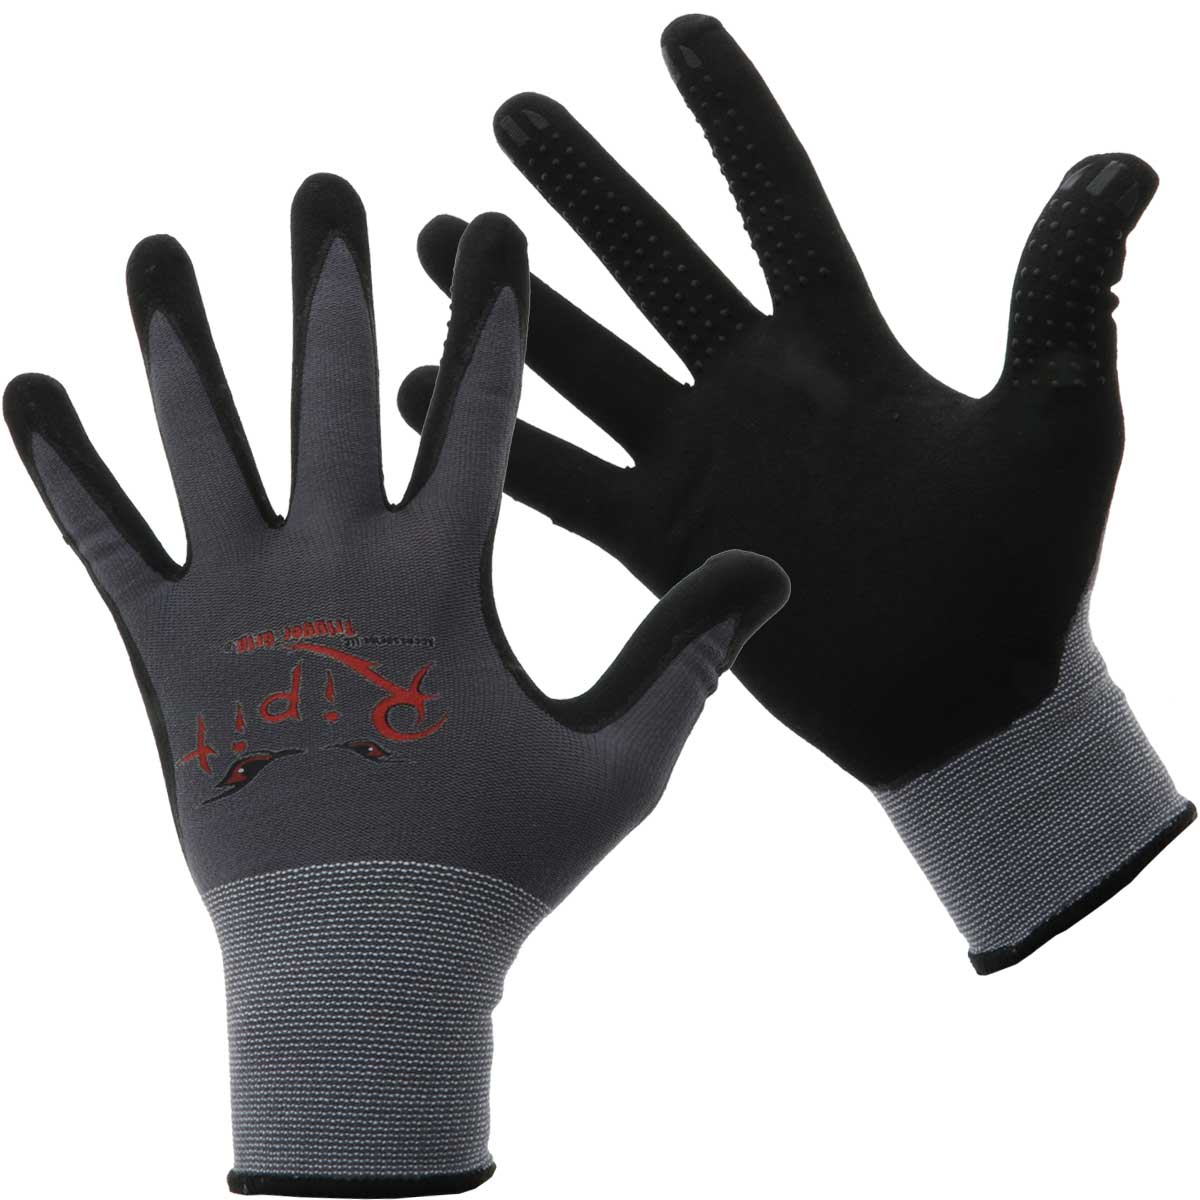 Rip-It Drywall Gloves With Trigger Grip - Grey